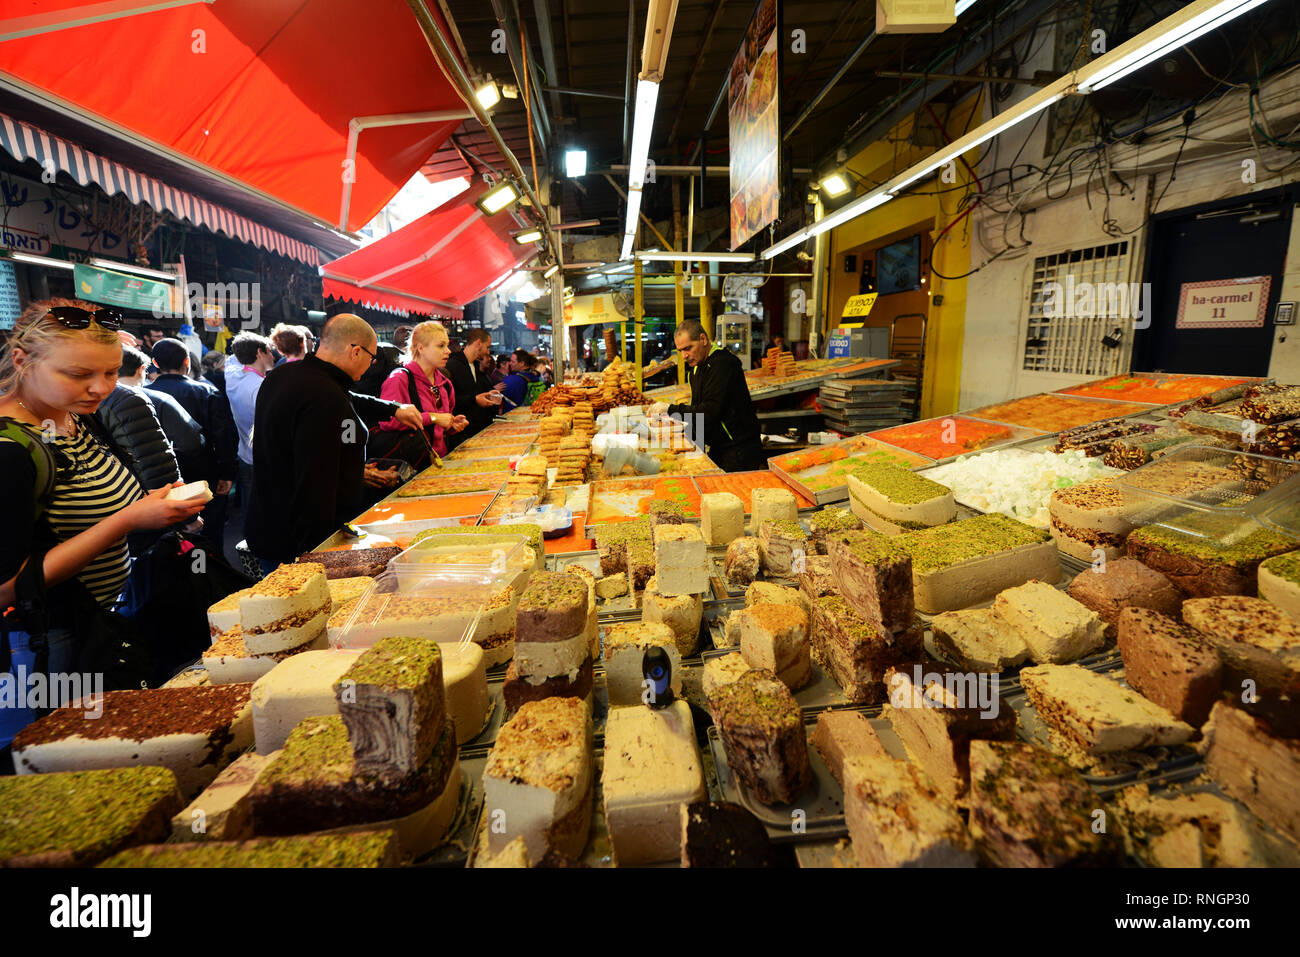 A Halva stall at the Carmel market in Tel-Aviv. - Stock Image